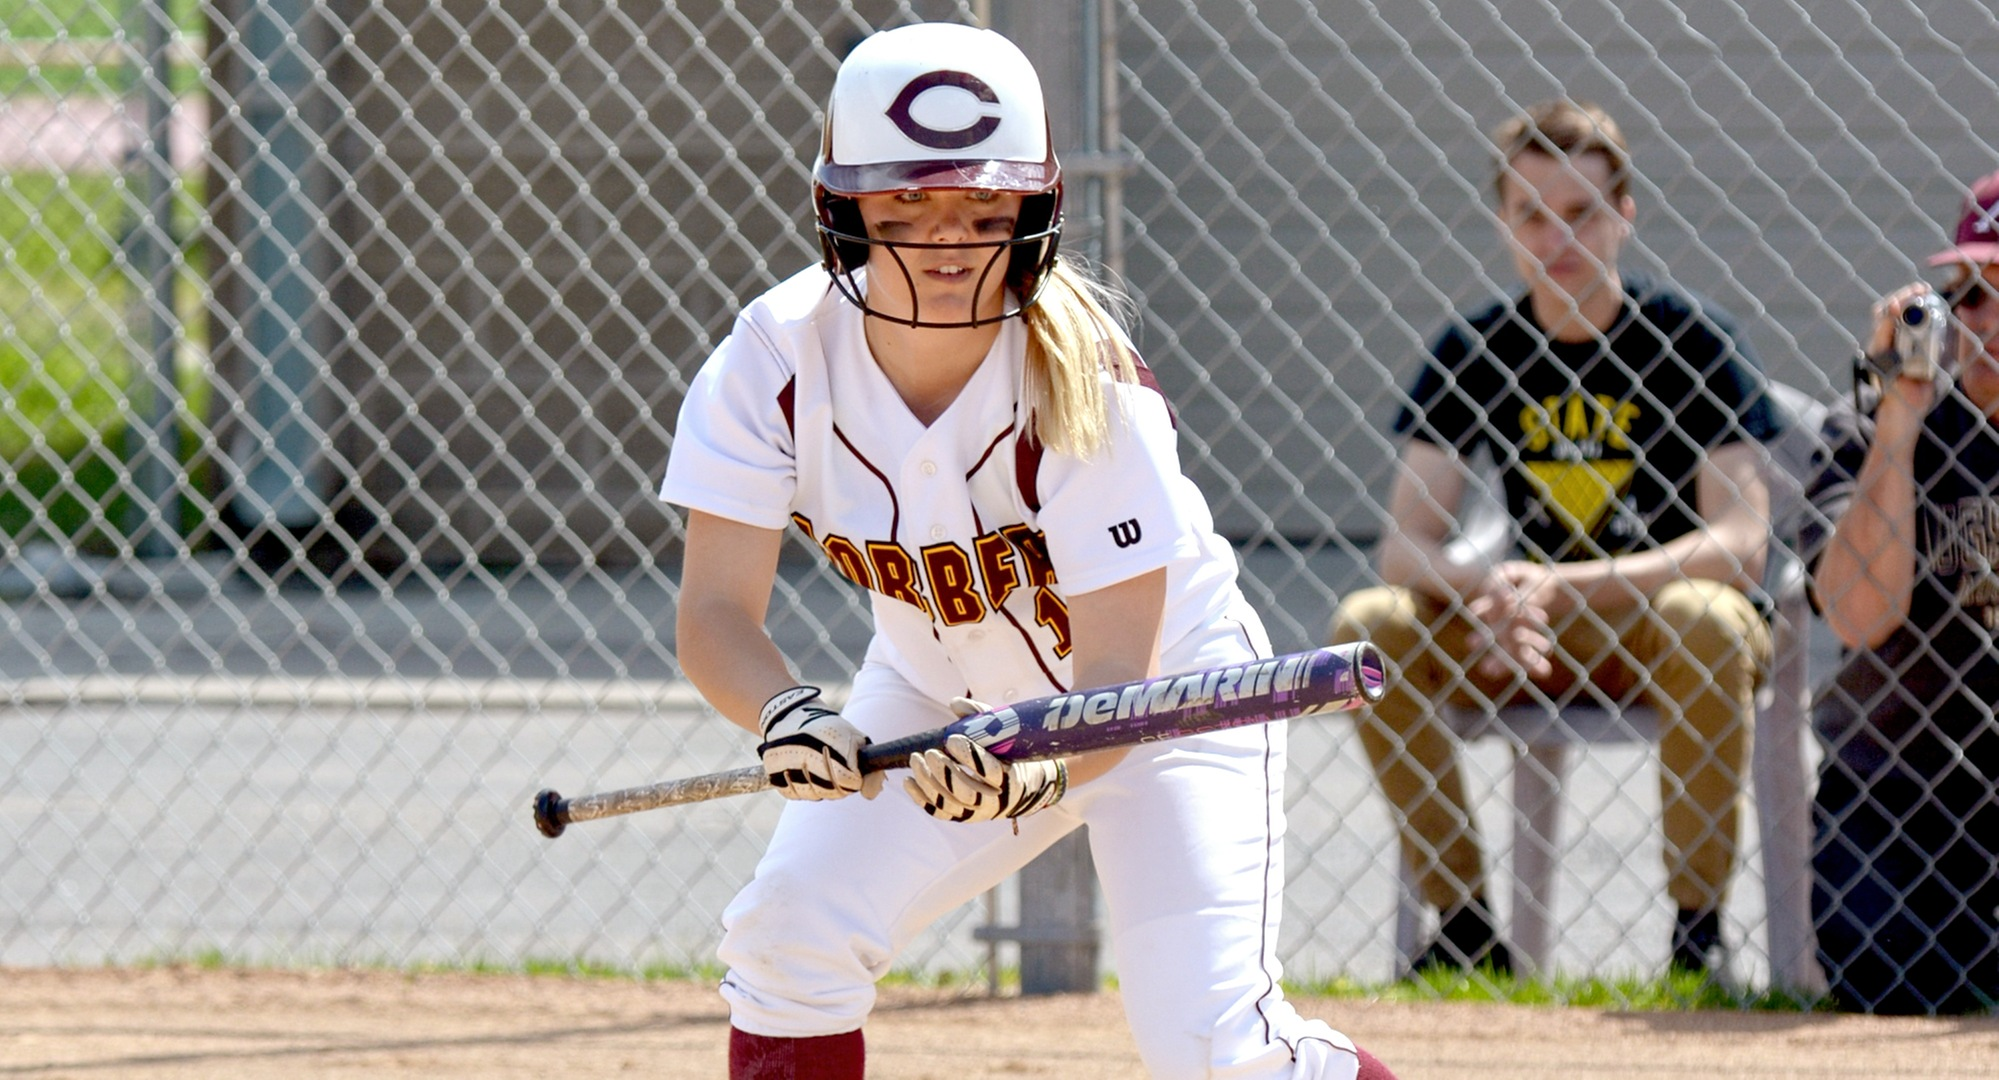 Sophomore Cora Zackrison had hits in both games for the Cobbers on Day 2 in Florida and drove in the team's only run against York.